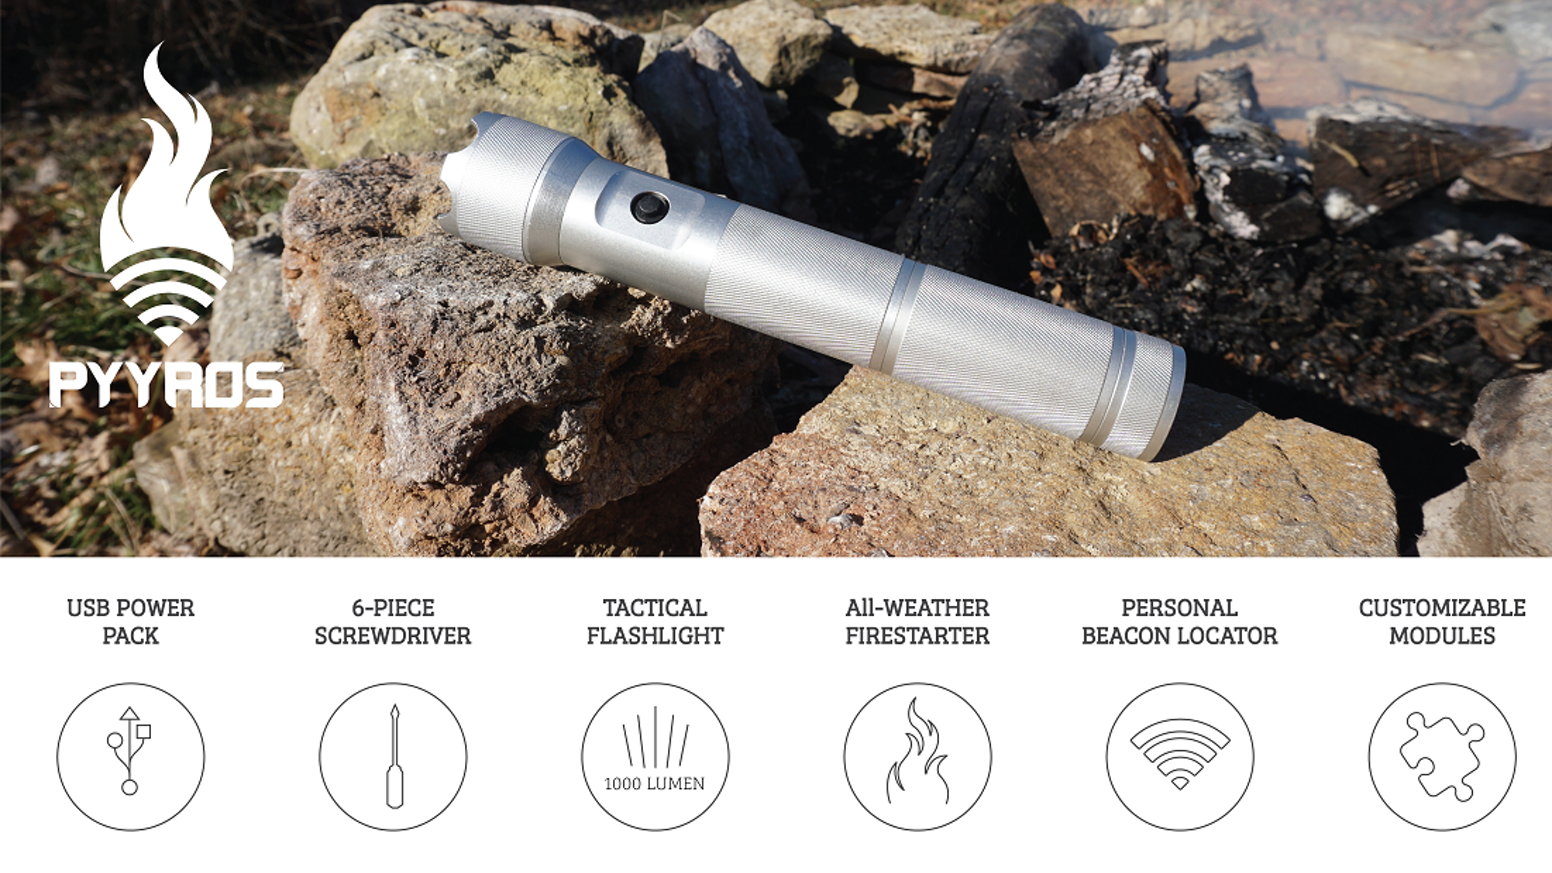 A modular flashlight designed for extreme environments and everyday use. Flashlight, Firestarter, Personal Beacon Locator, and more!